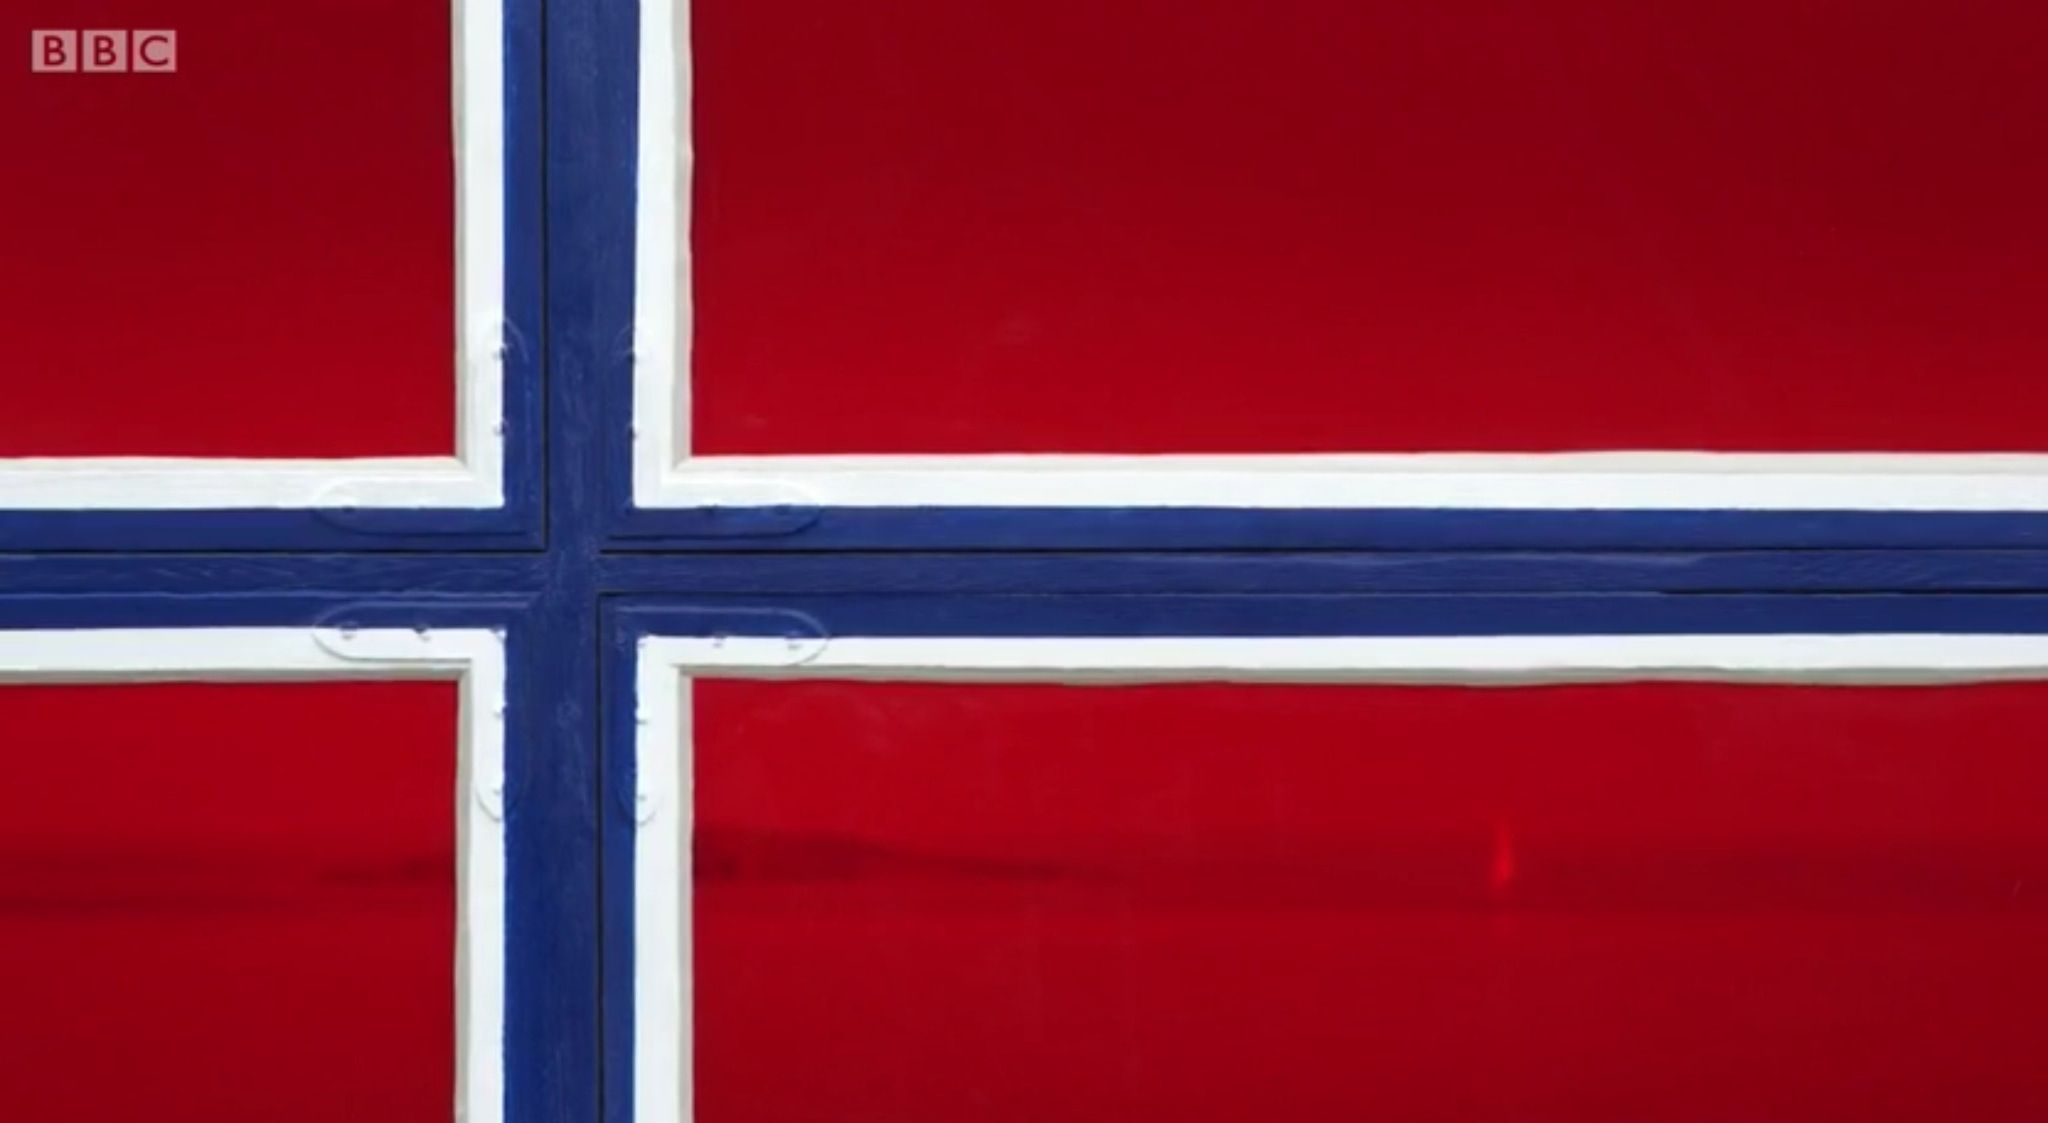 Eurovision Song Contest 2014 Norway flag art